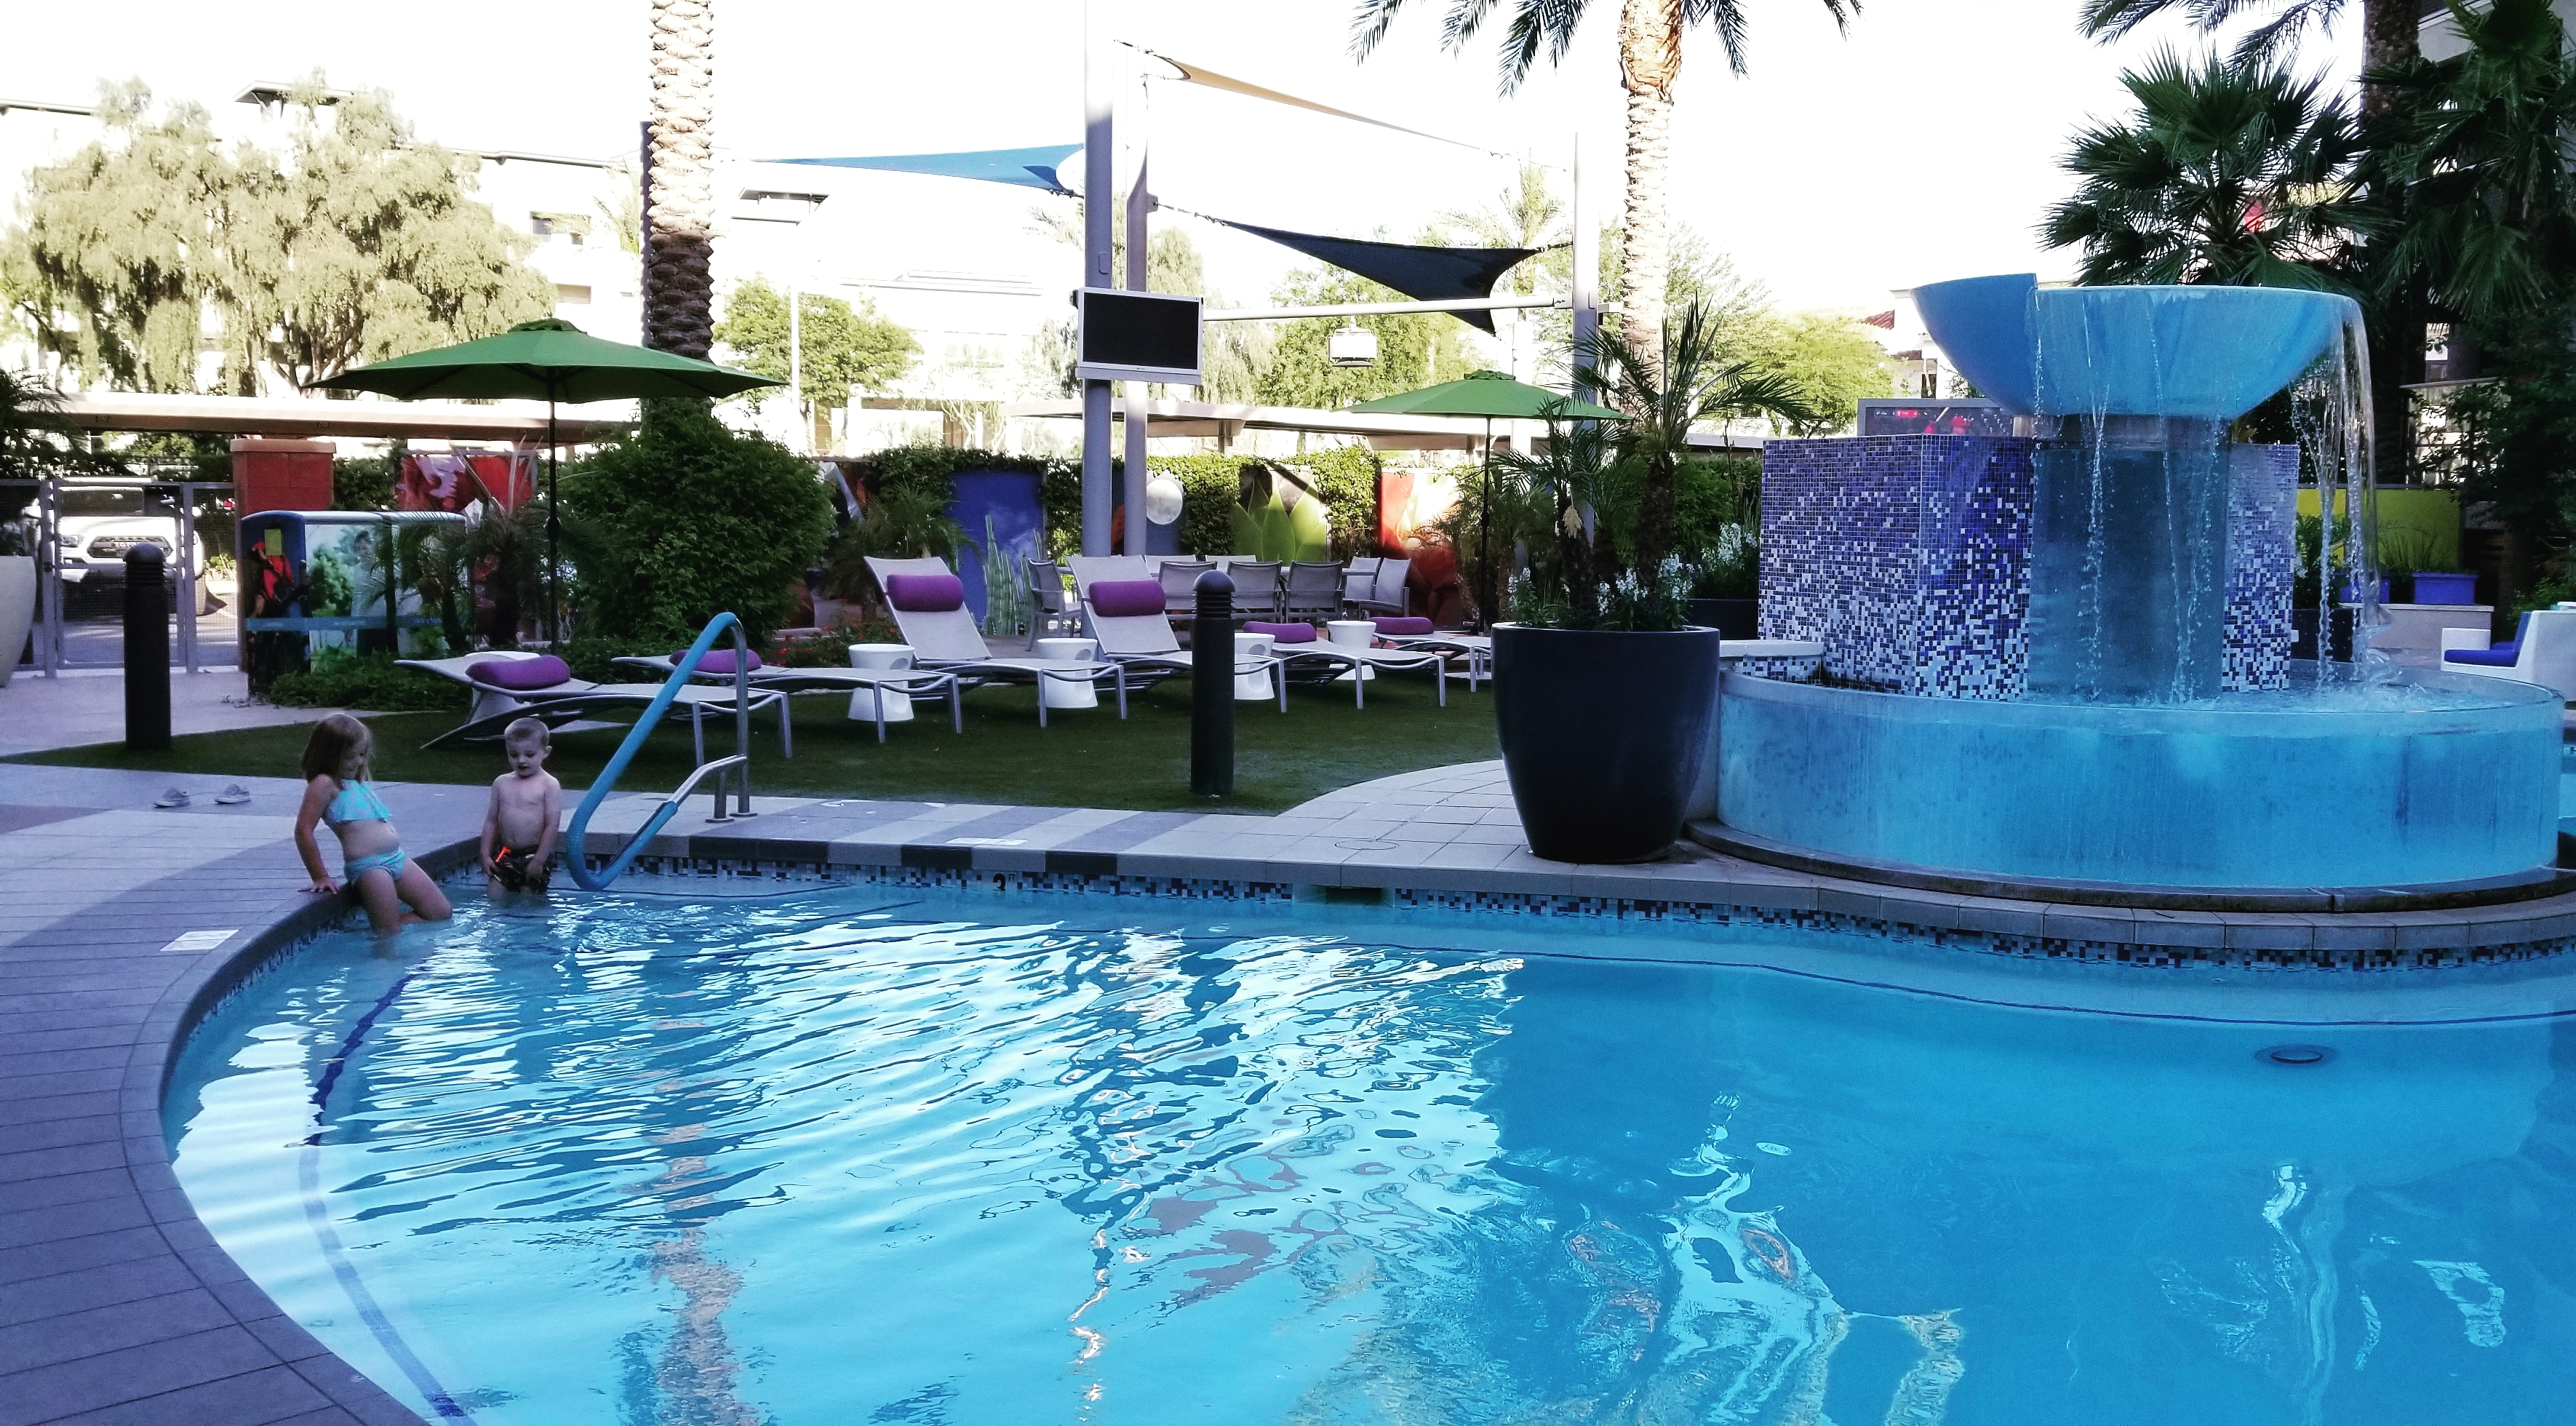 While your forever home may not have a pool, it's always good to enjoy some poolside fun on vacation